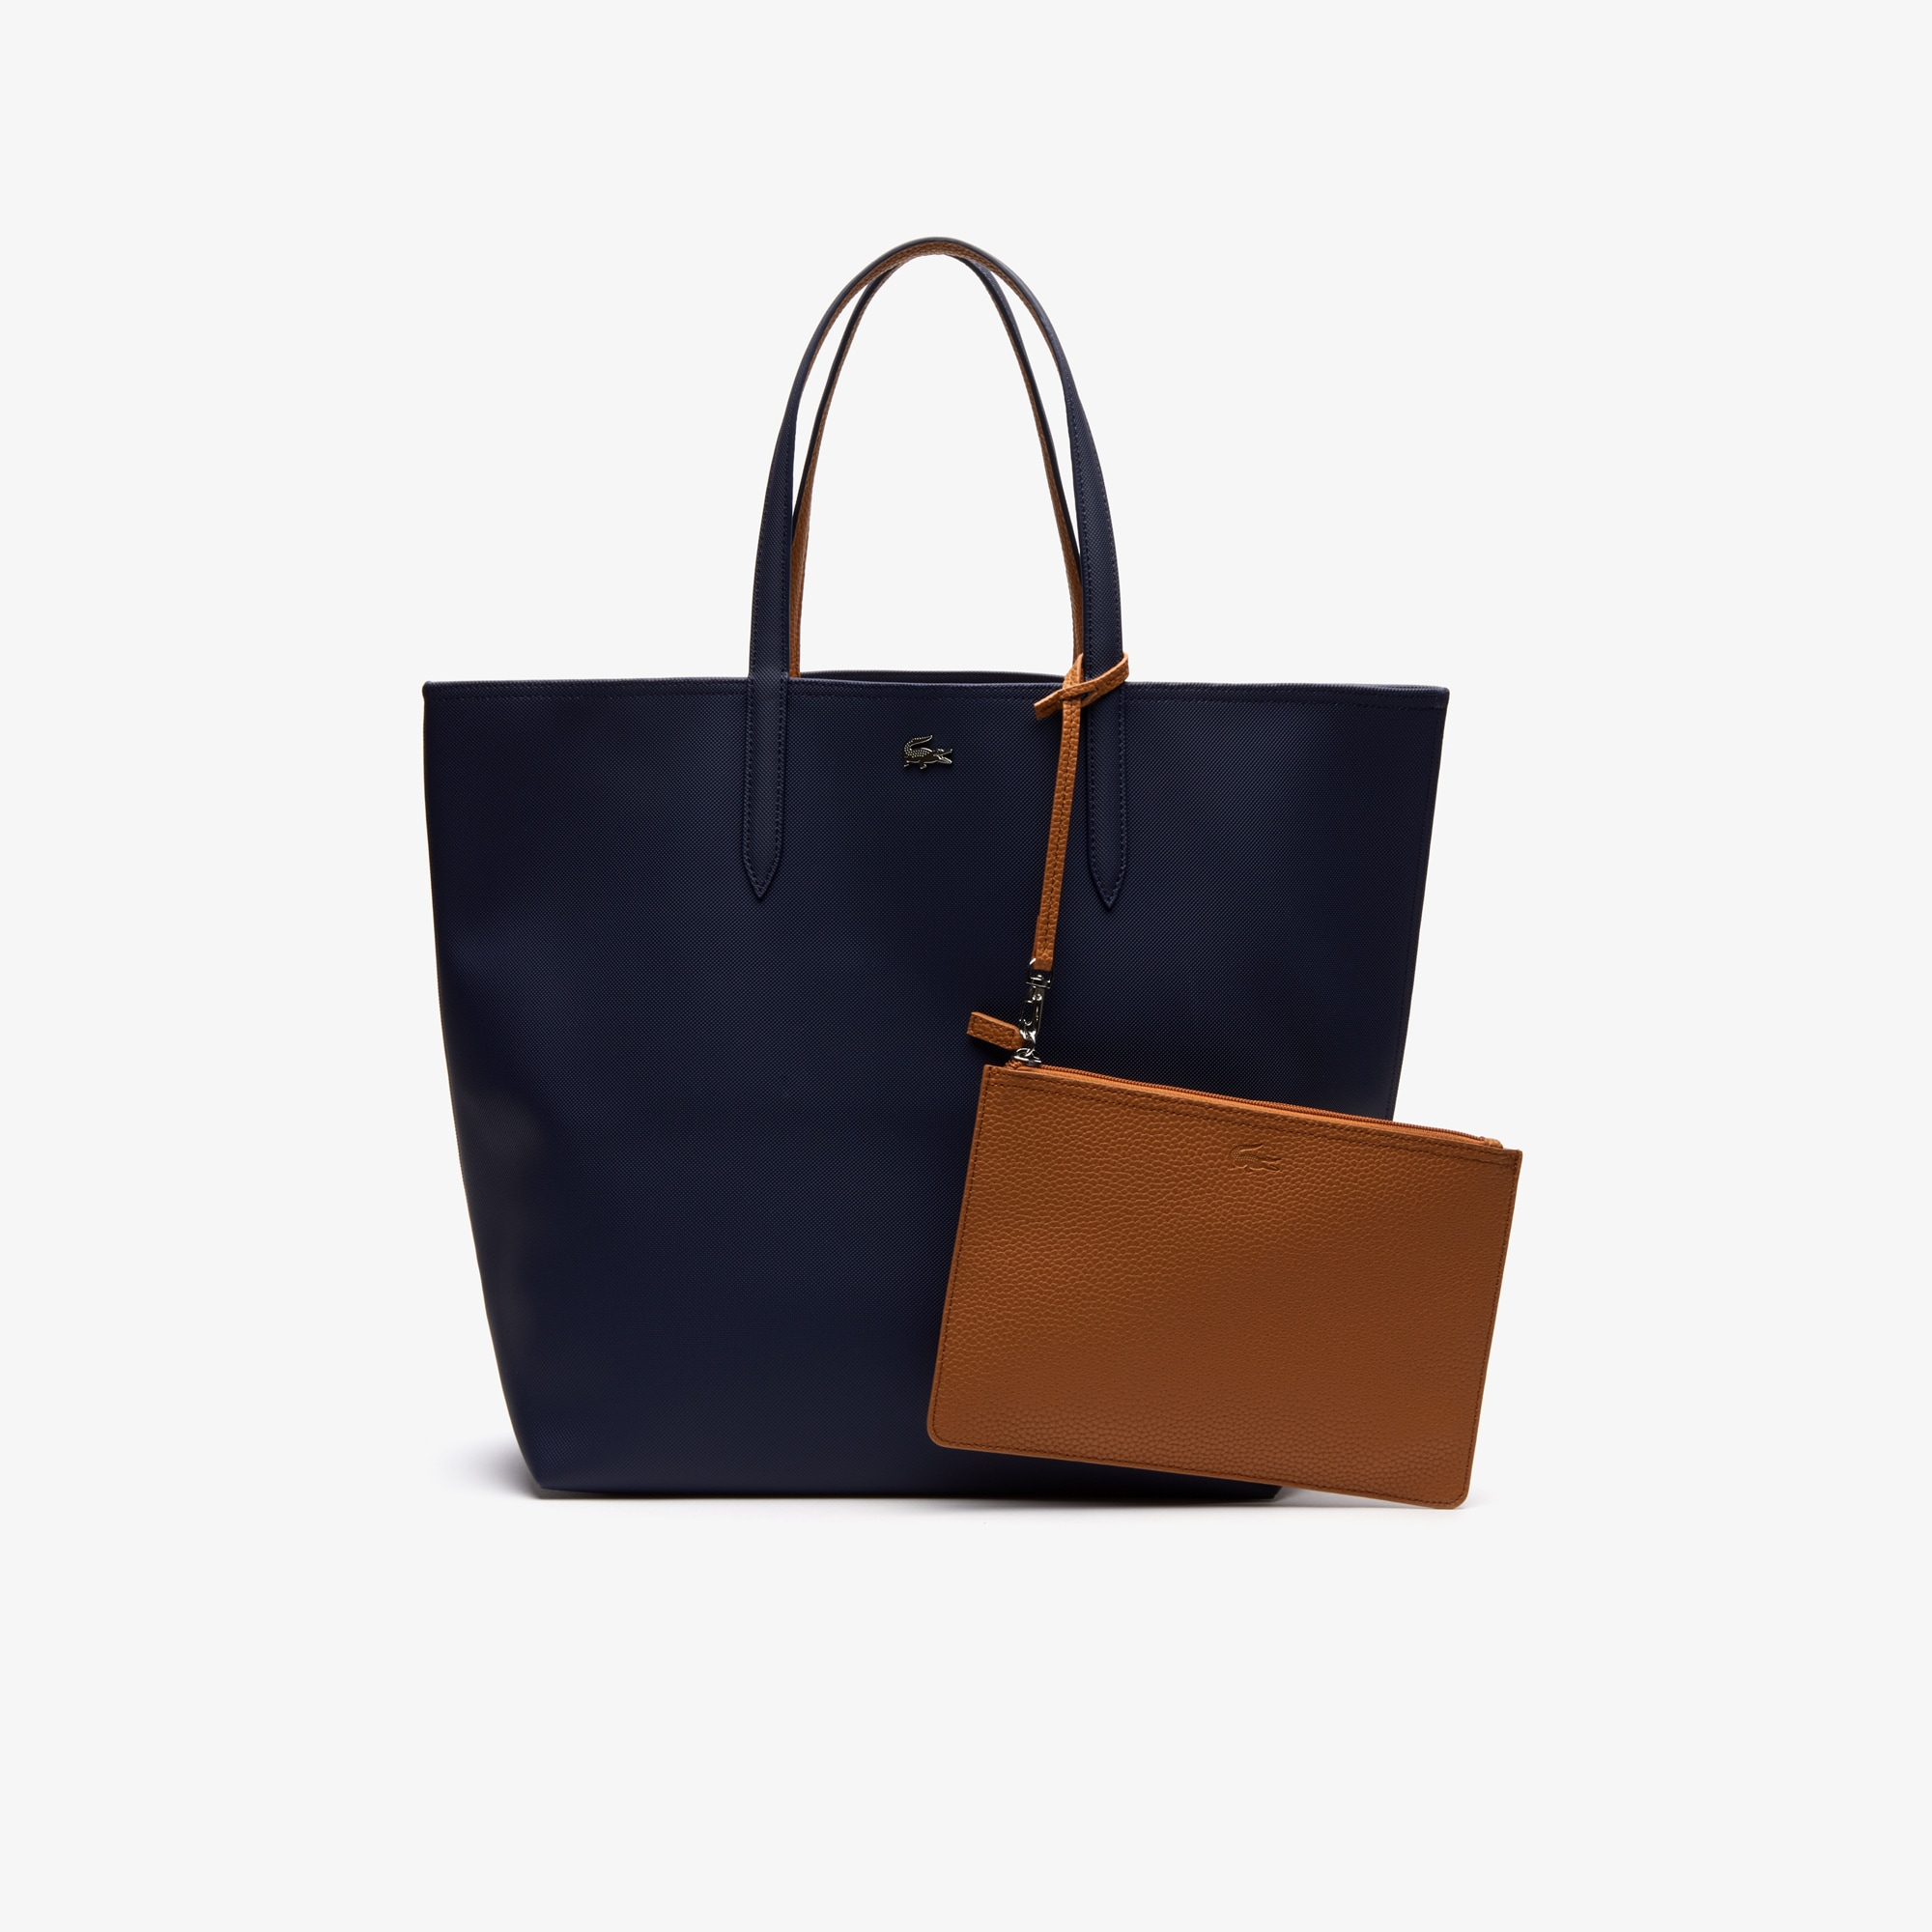 Leather Bags and Accessories  Leather Goods   LACOSTE ca78b1a417